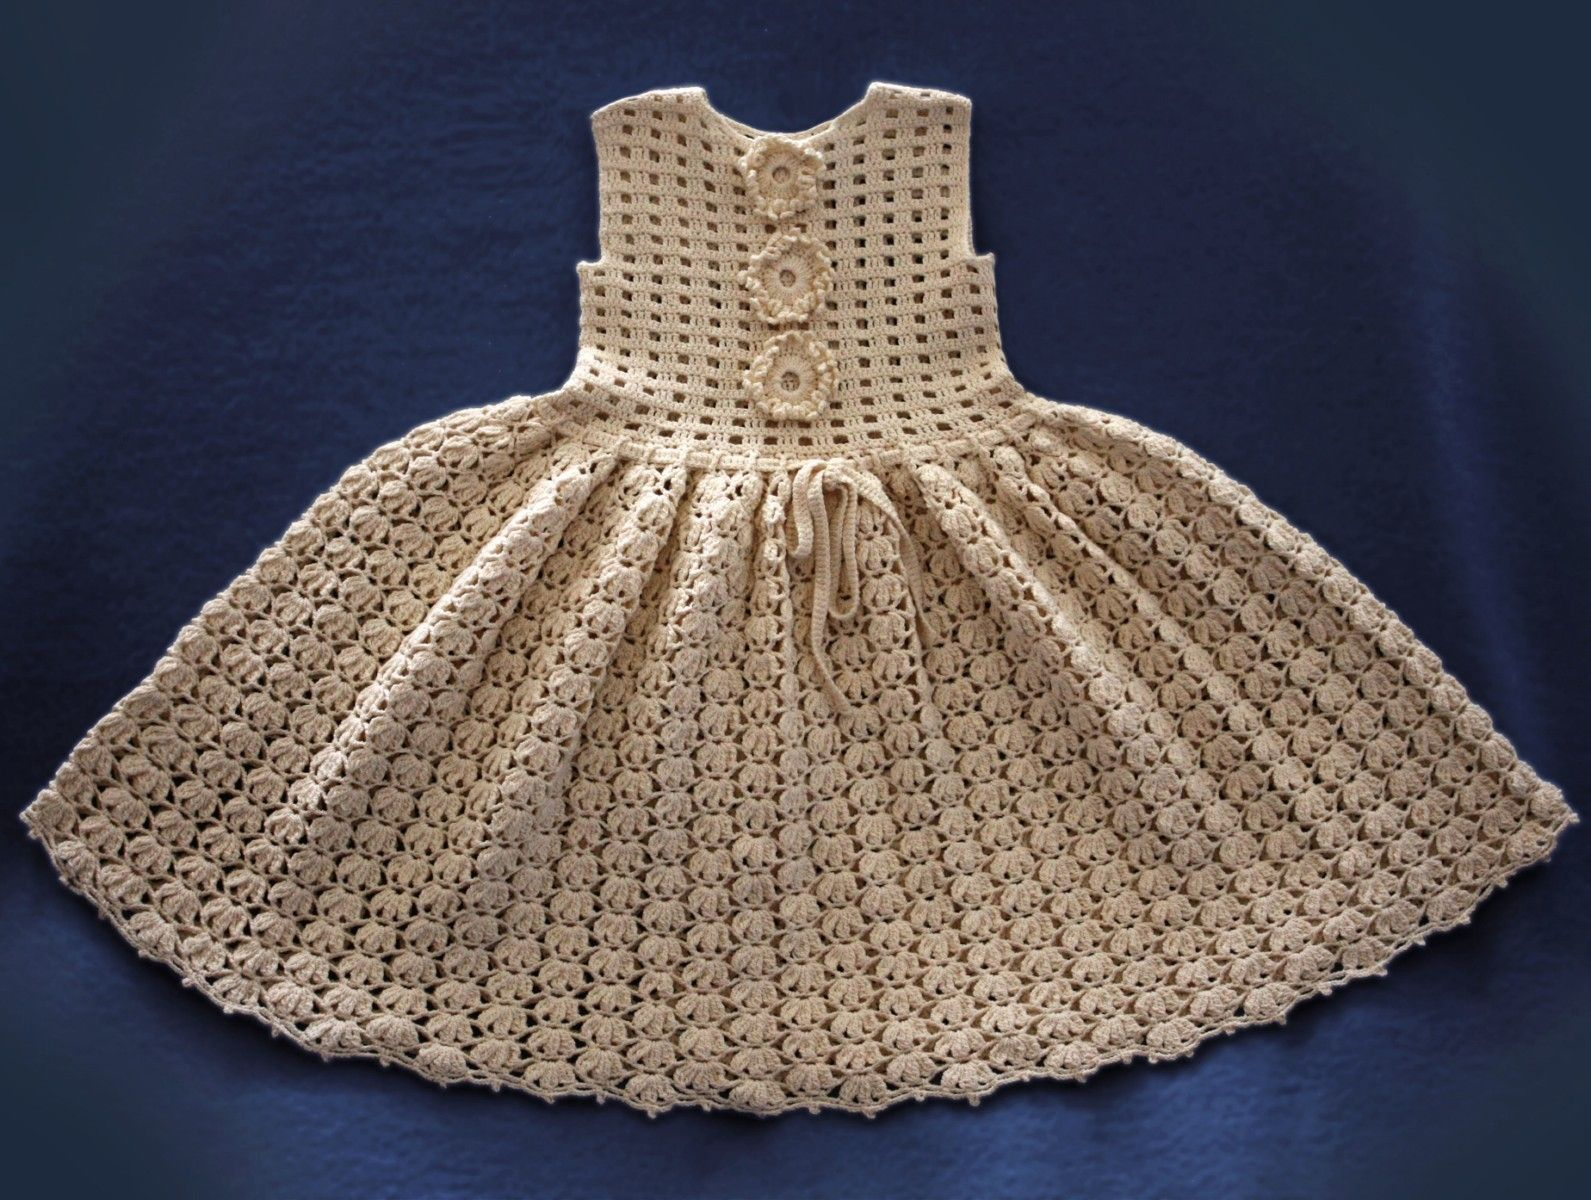 Knitting Instructions For Baby Dress : Free baby crochet patterns from our